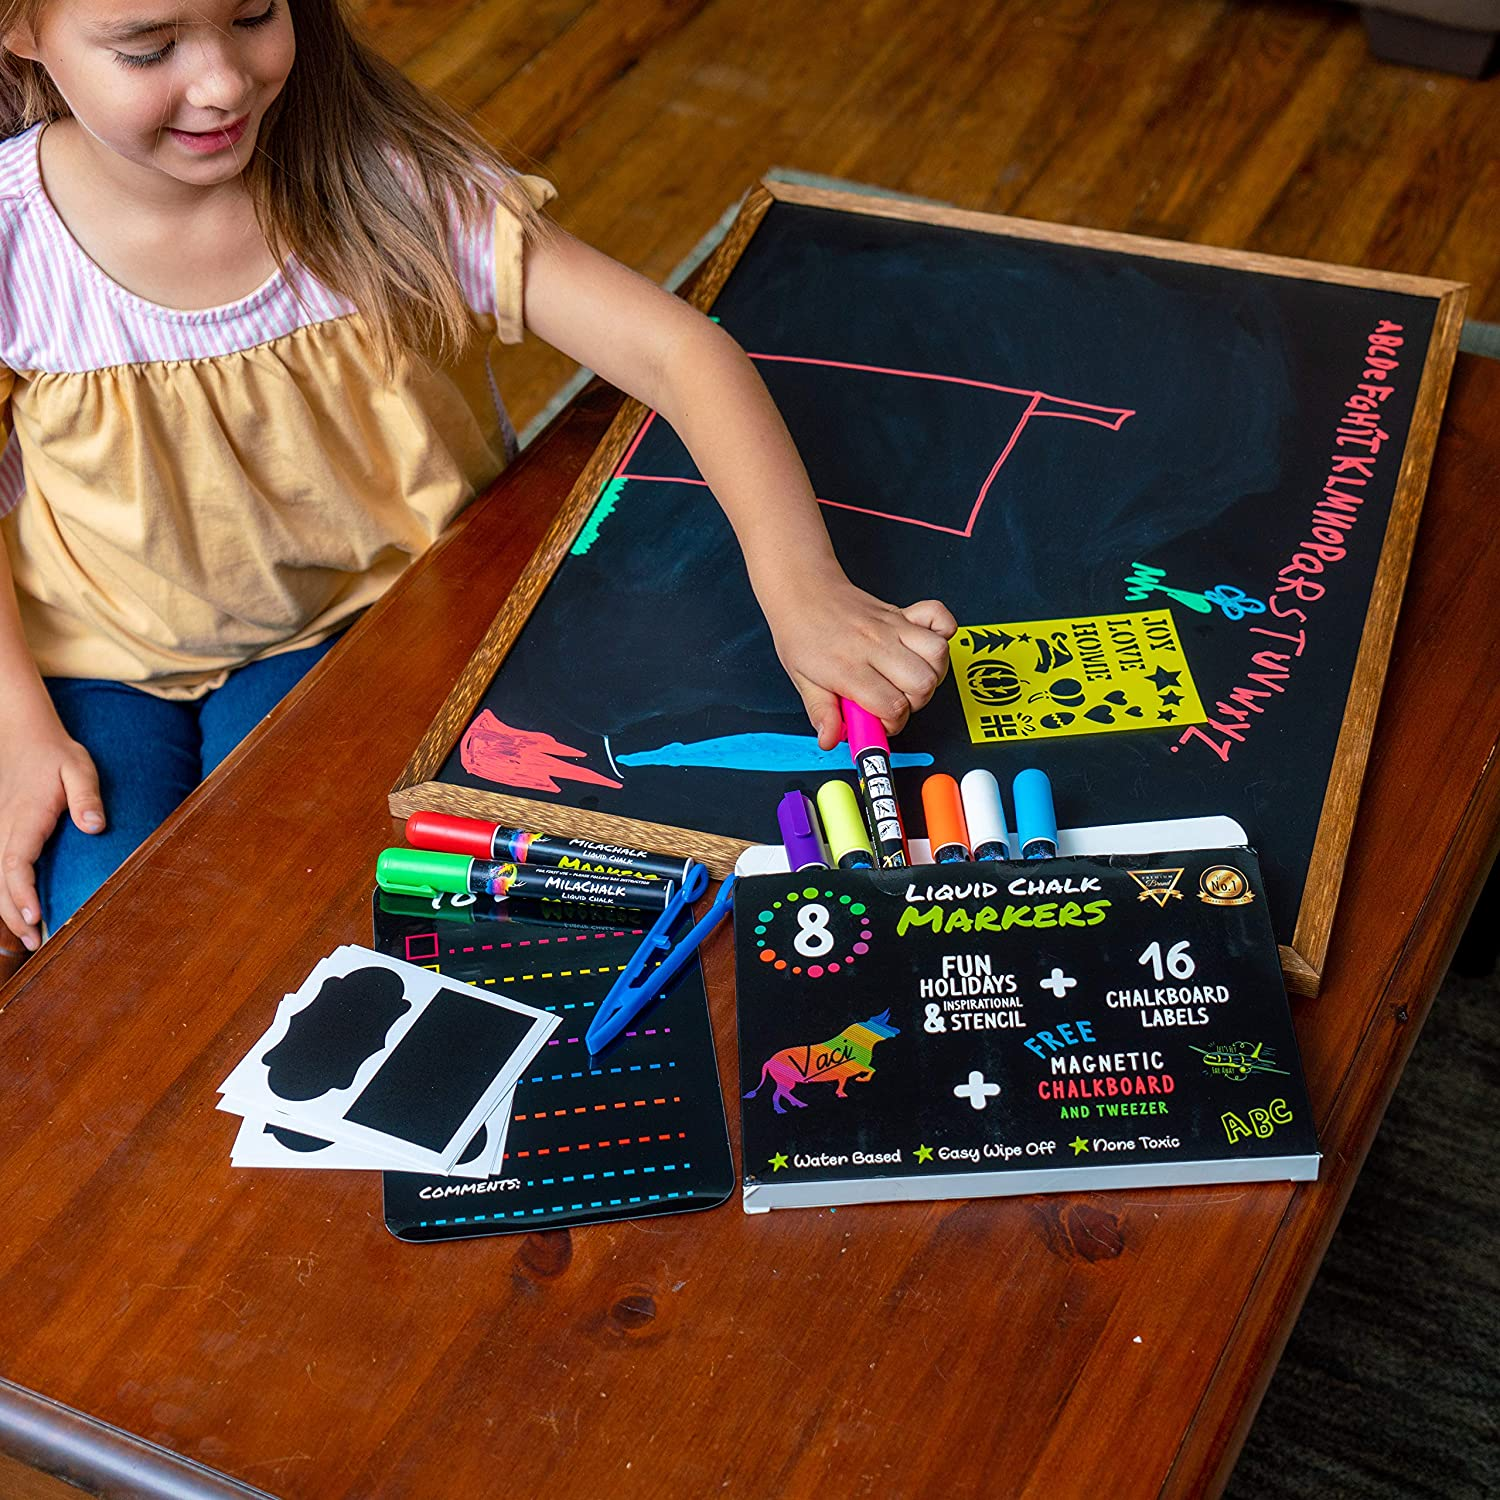 Chalk Markers by Vaci, Pack of 8 + Magnetic Chalkboard + Drawing Stencils + 16 Labels, Premium Liquid Chalkboard Neon Pens, Bullet or Chisel Reversible Tips : Office Products